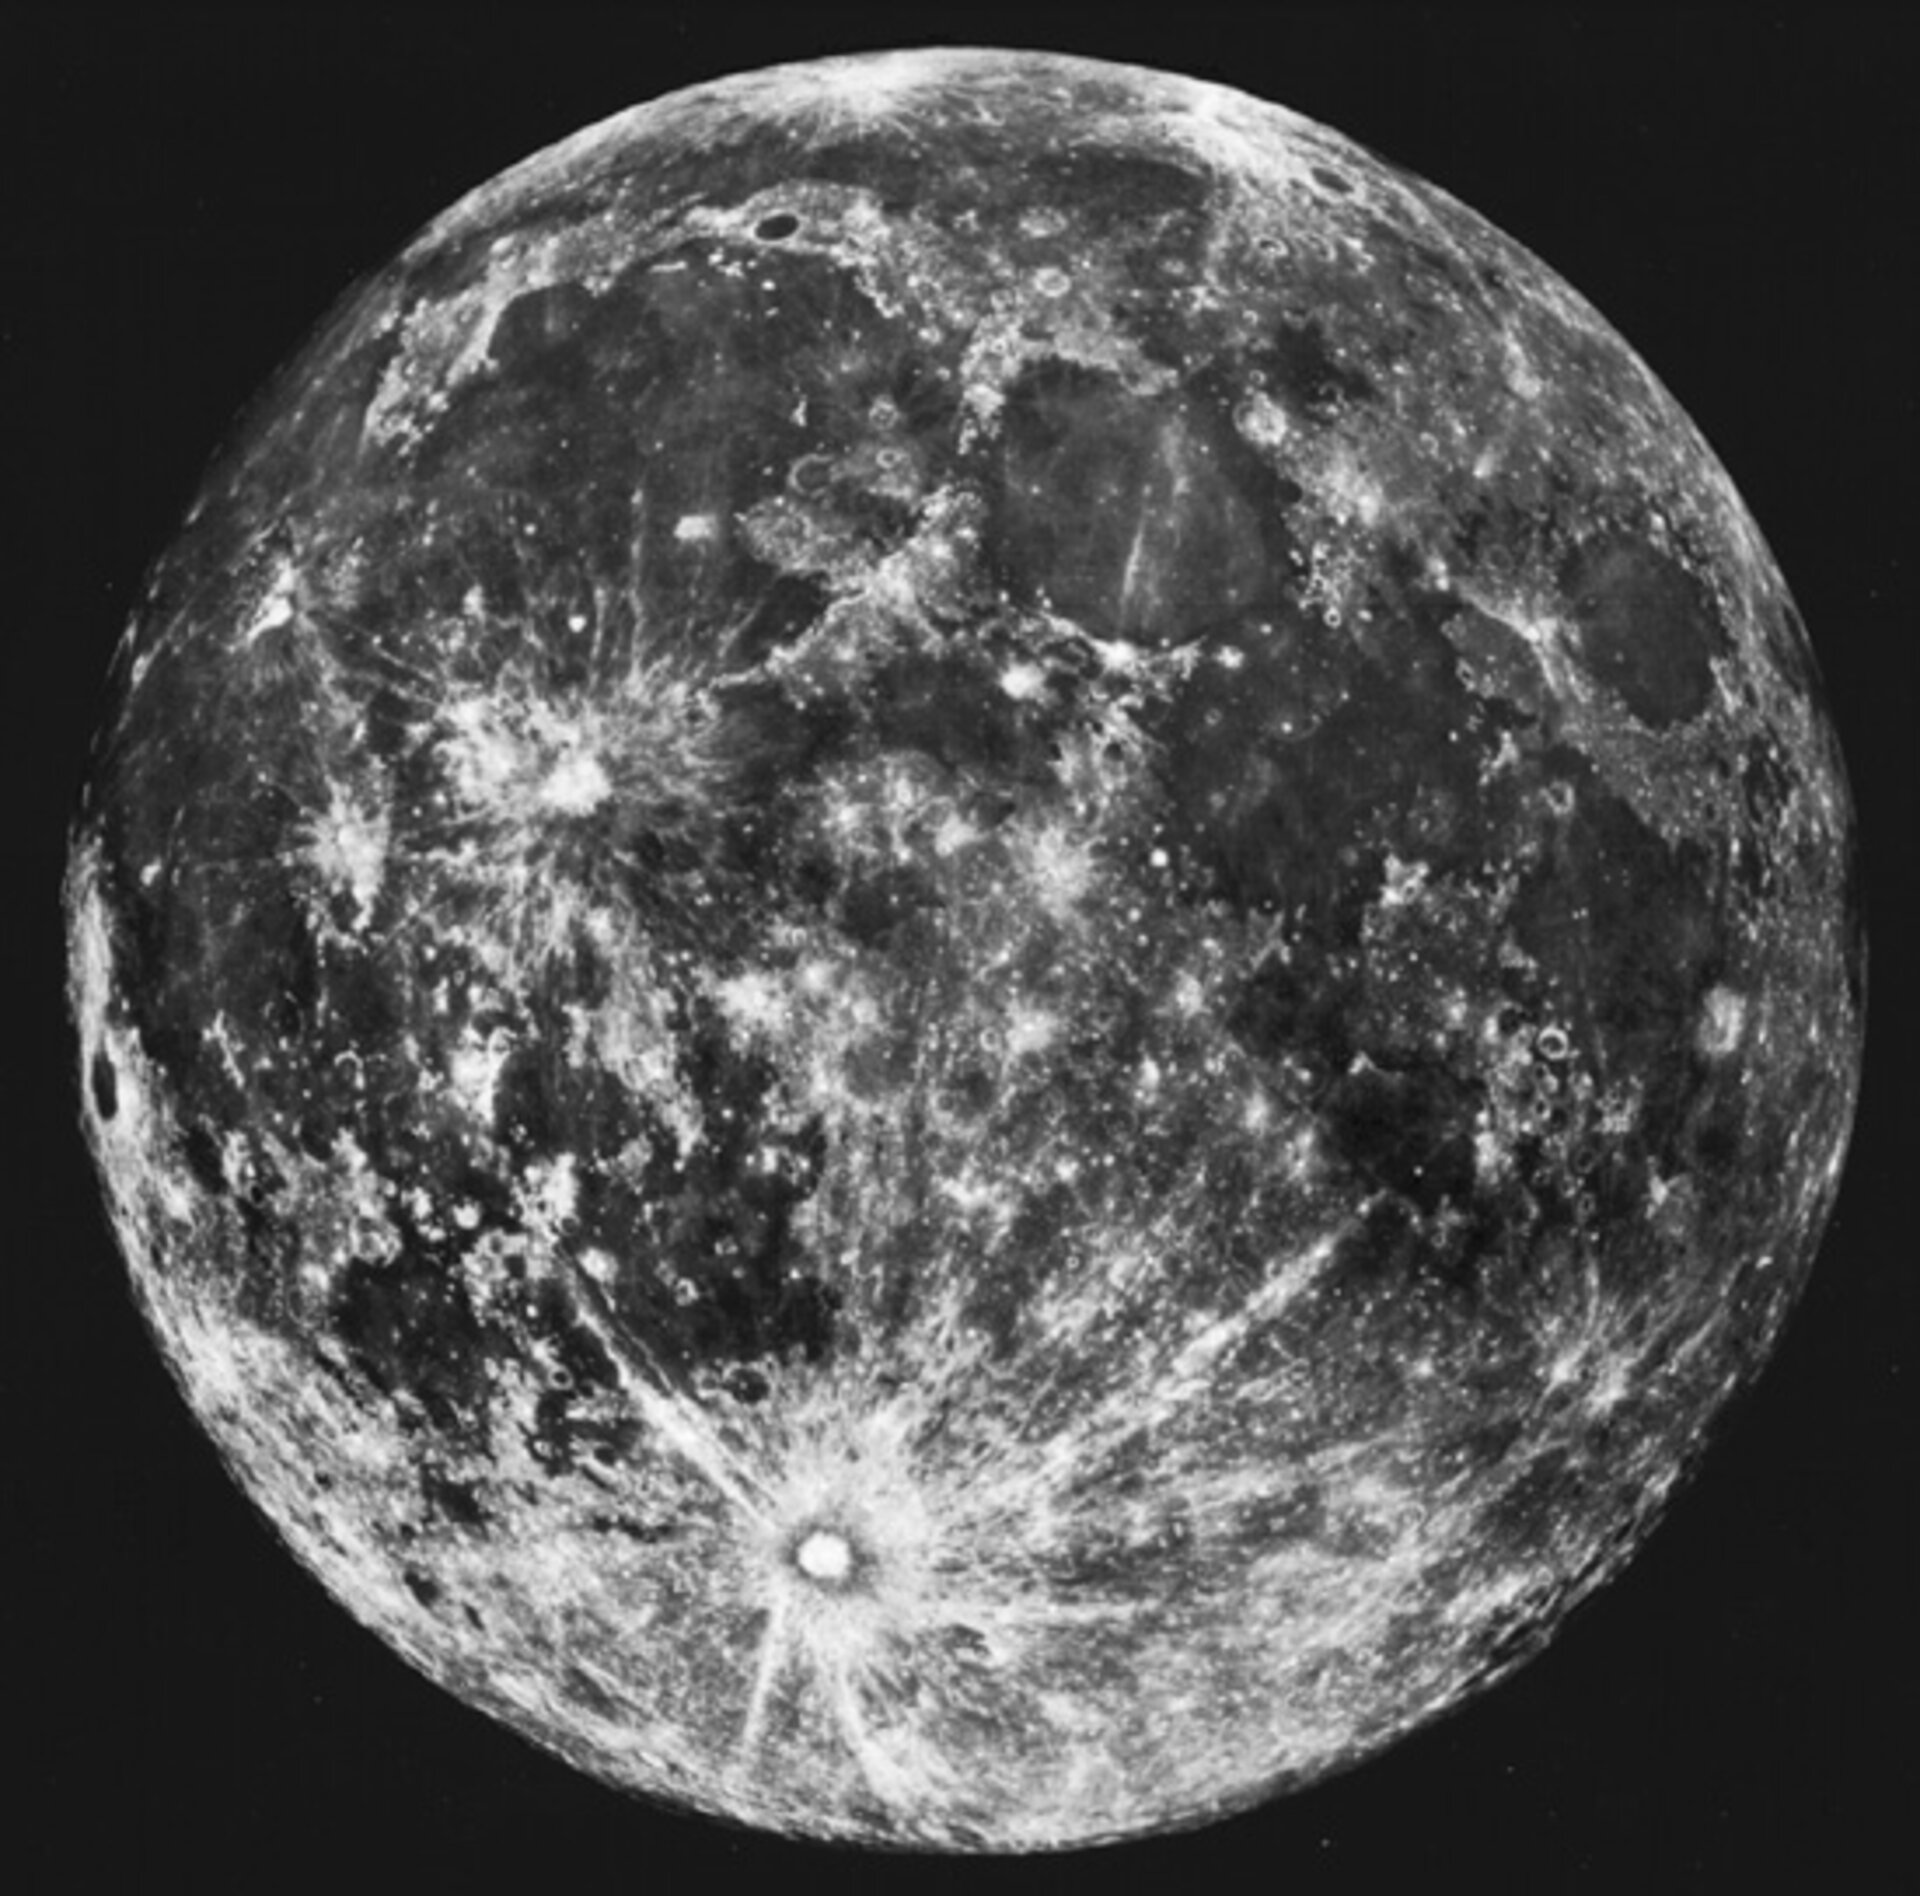 Telescopic view of the whole Moon seen from Earth